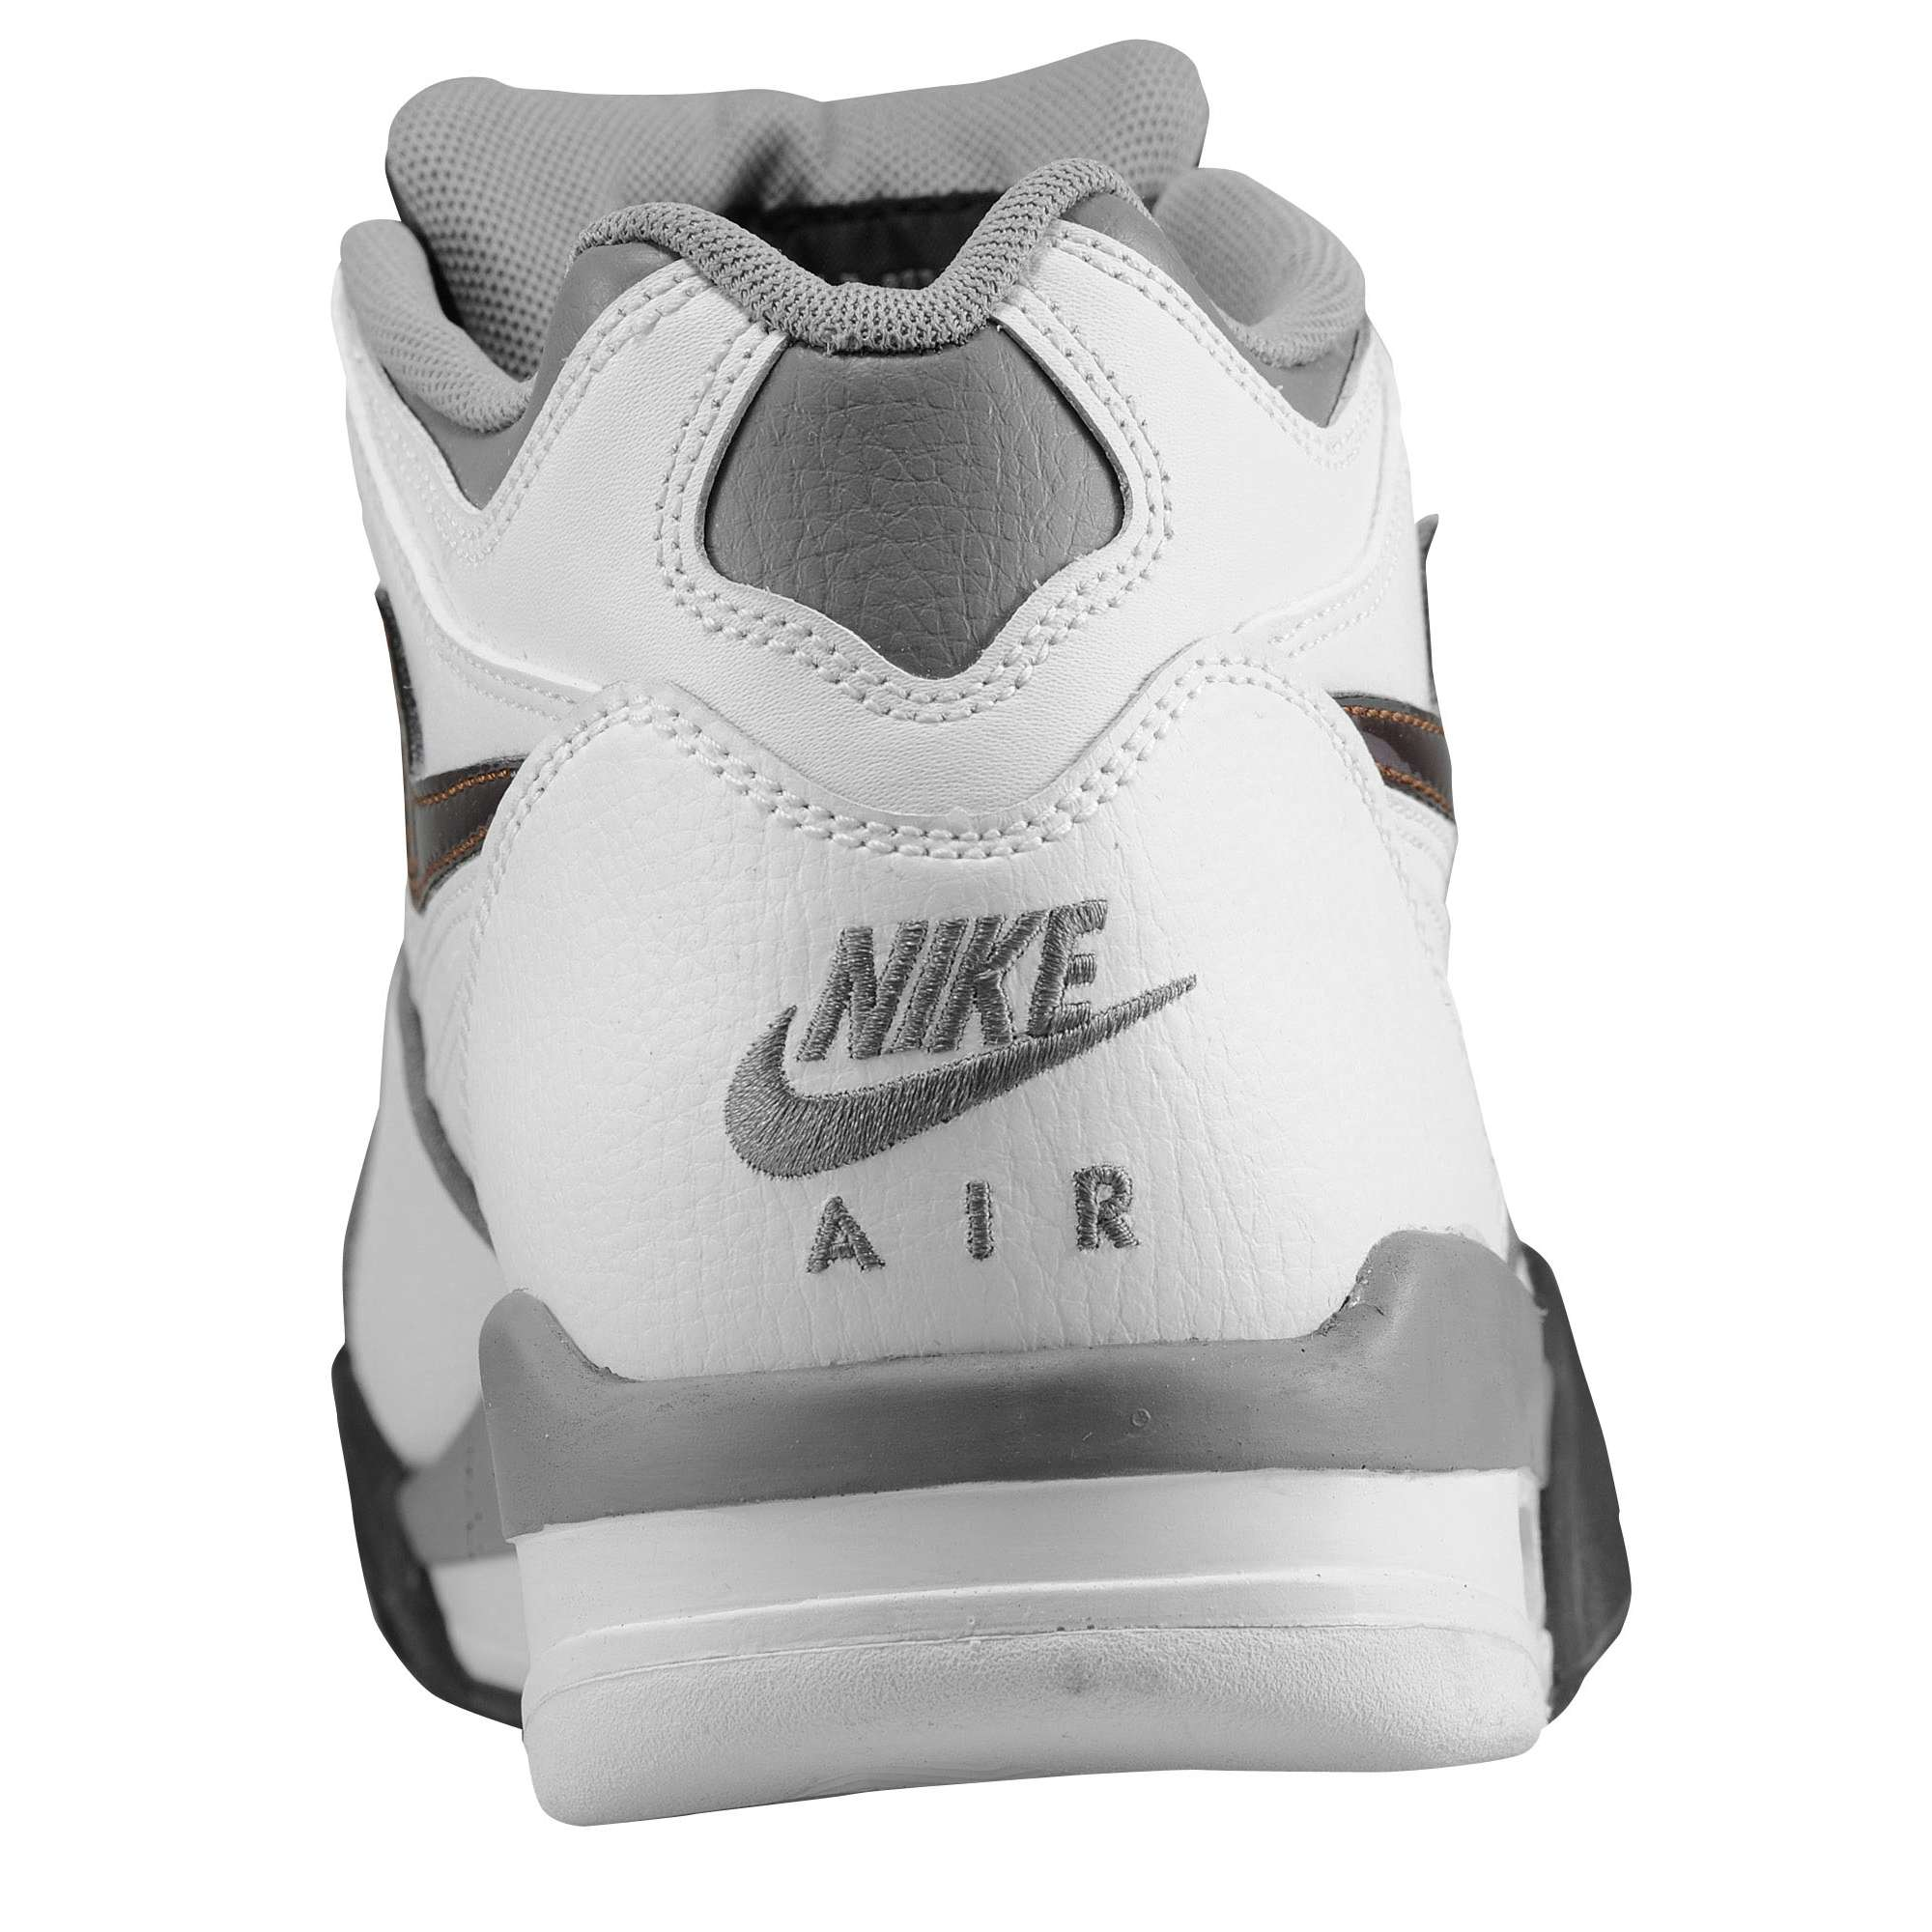 finest selection 8454f 7e02e amazon mens nike air flight 89 306252 161 white varsity red was 90.00 new  in box